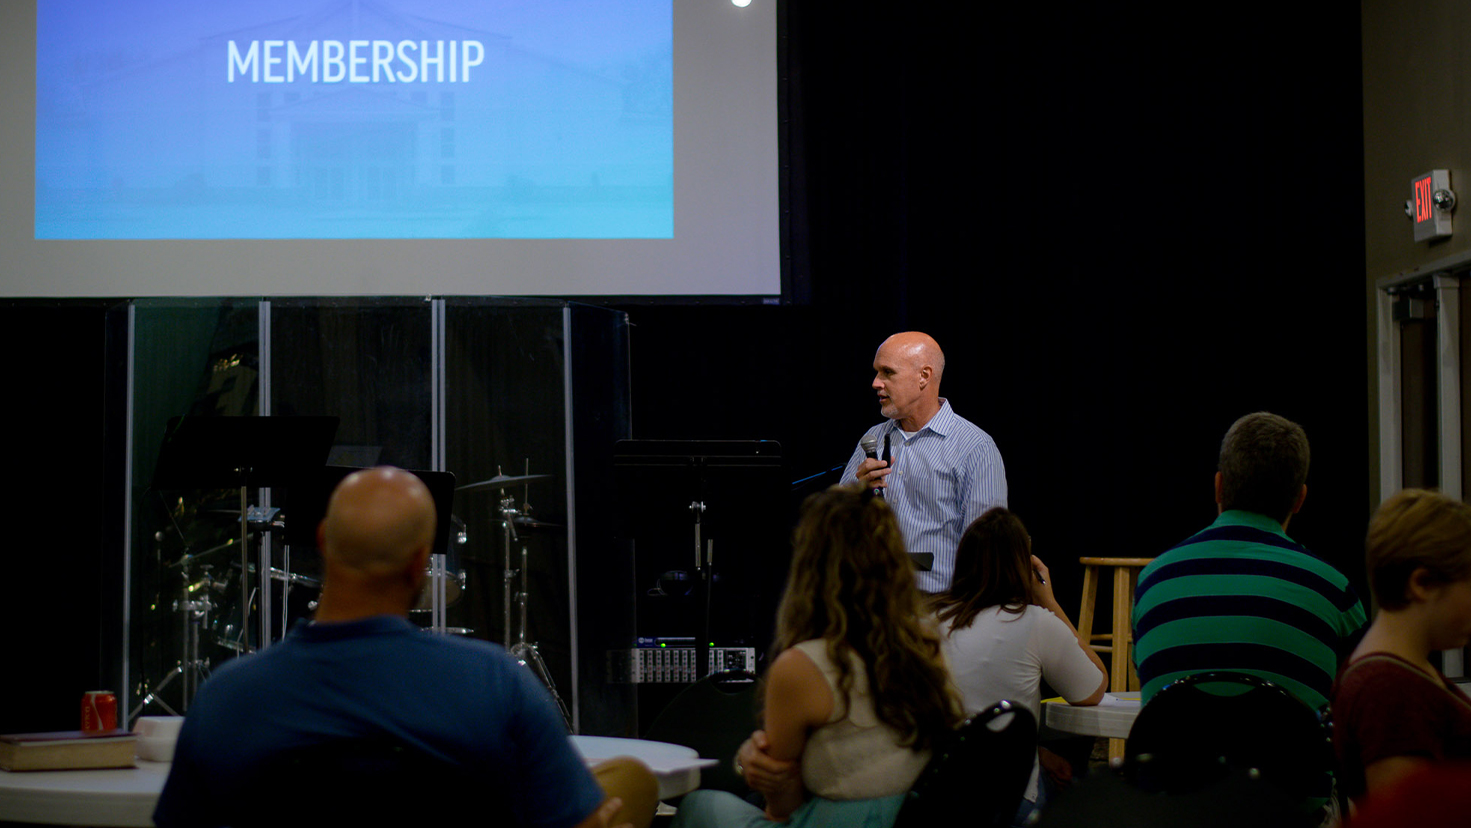 A pastor speaking at church membership class